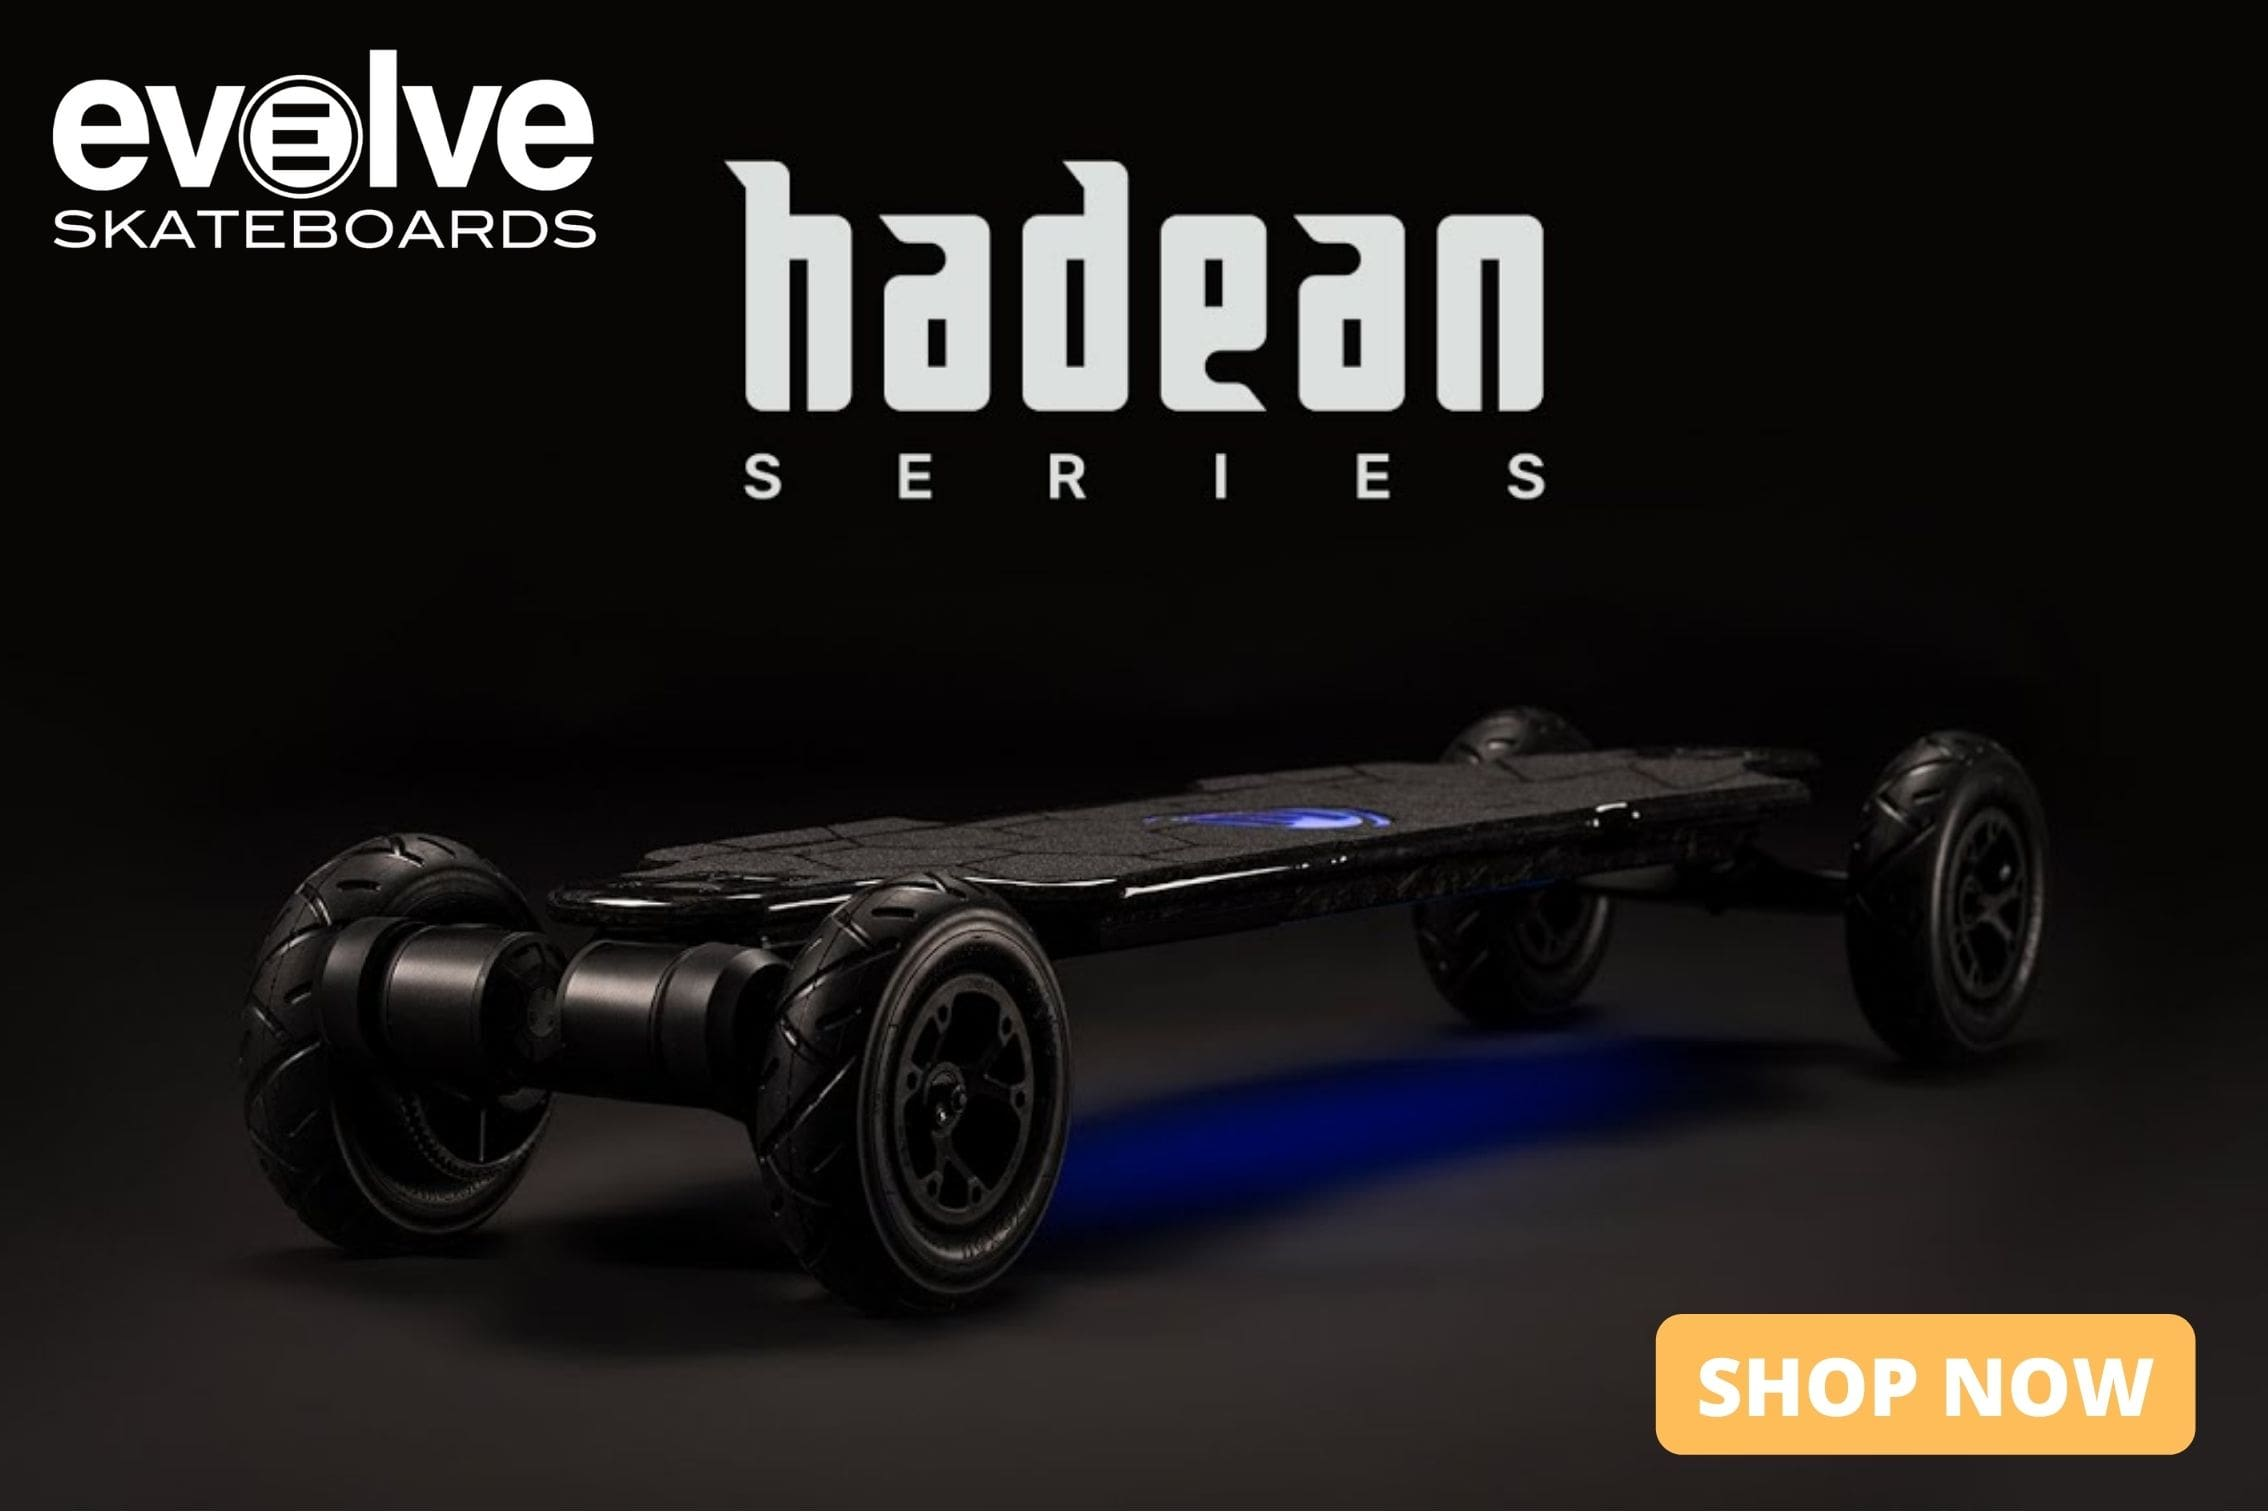 Evolve Electric Skateboard Collection Page